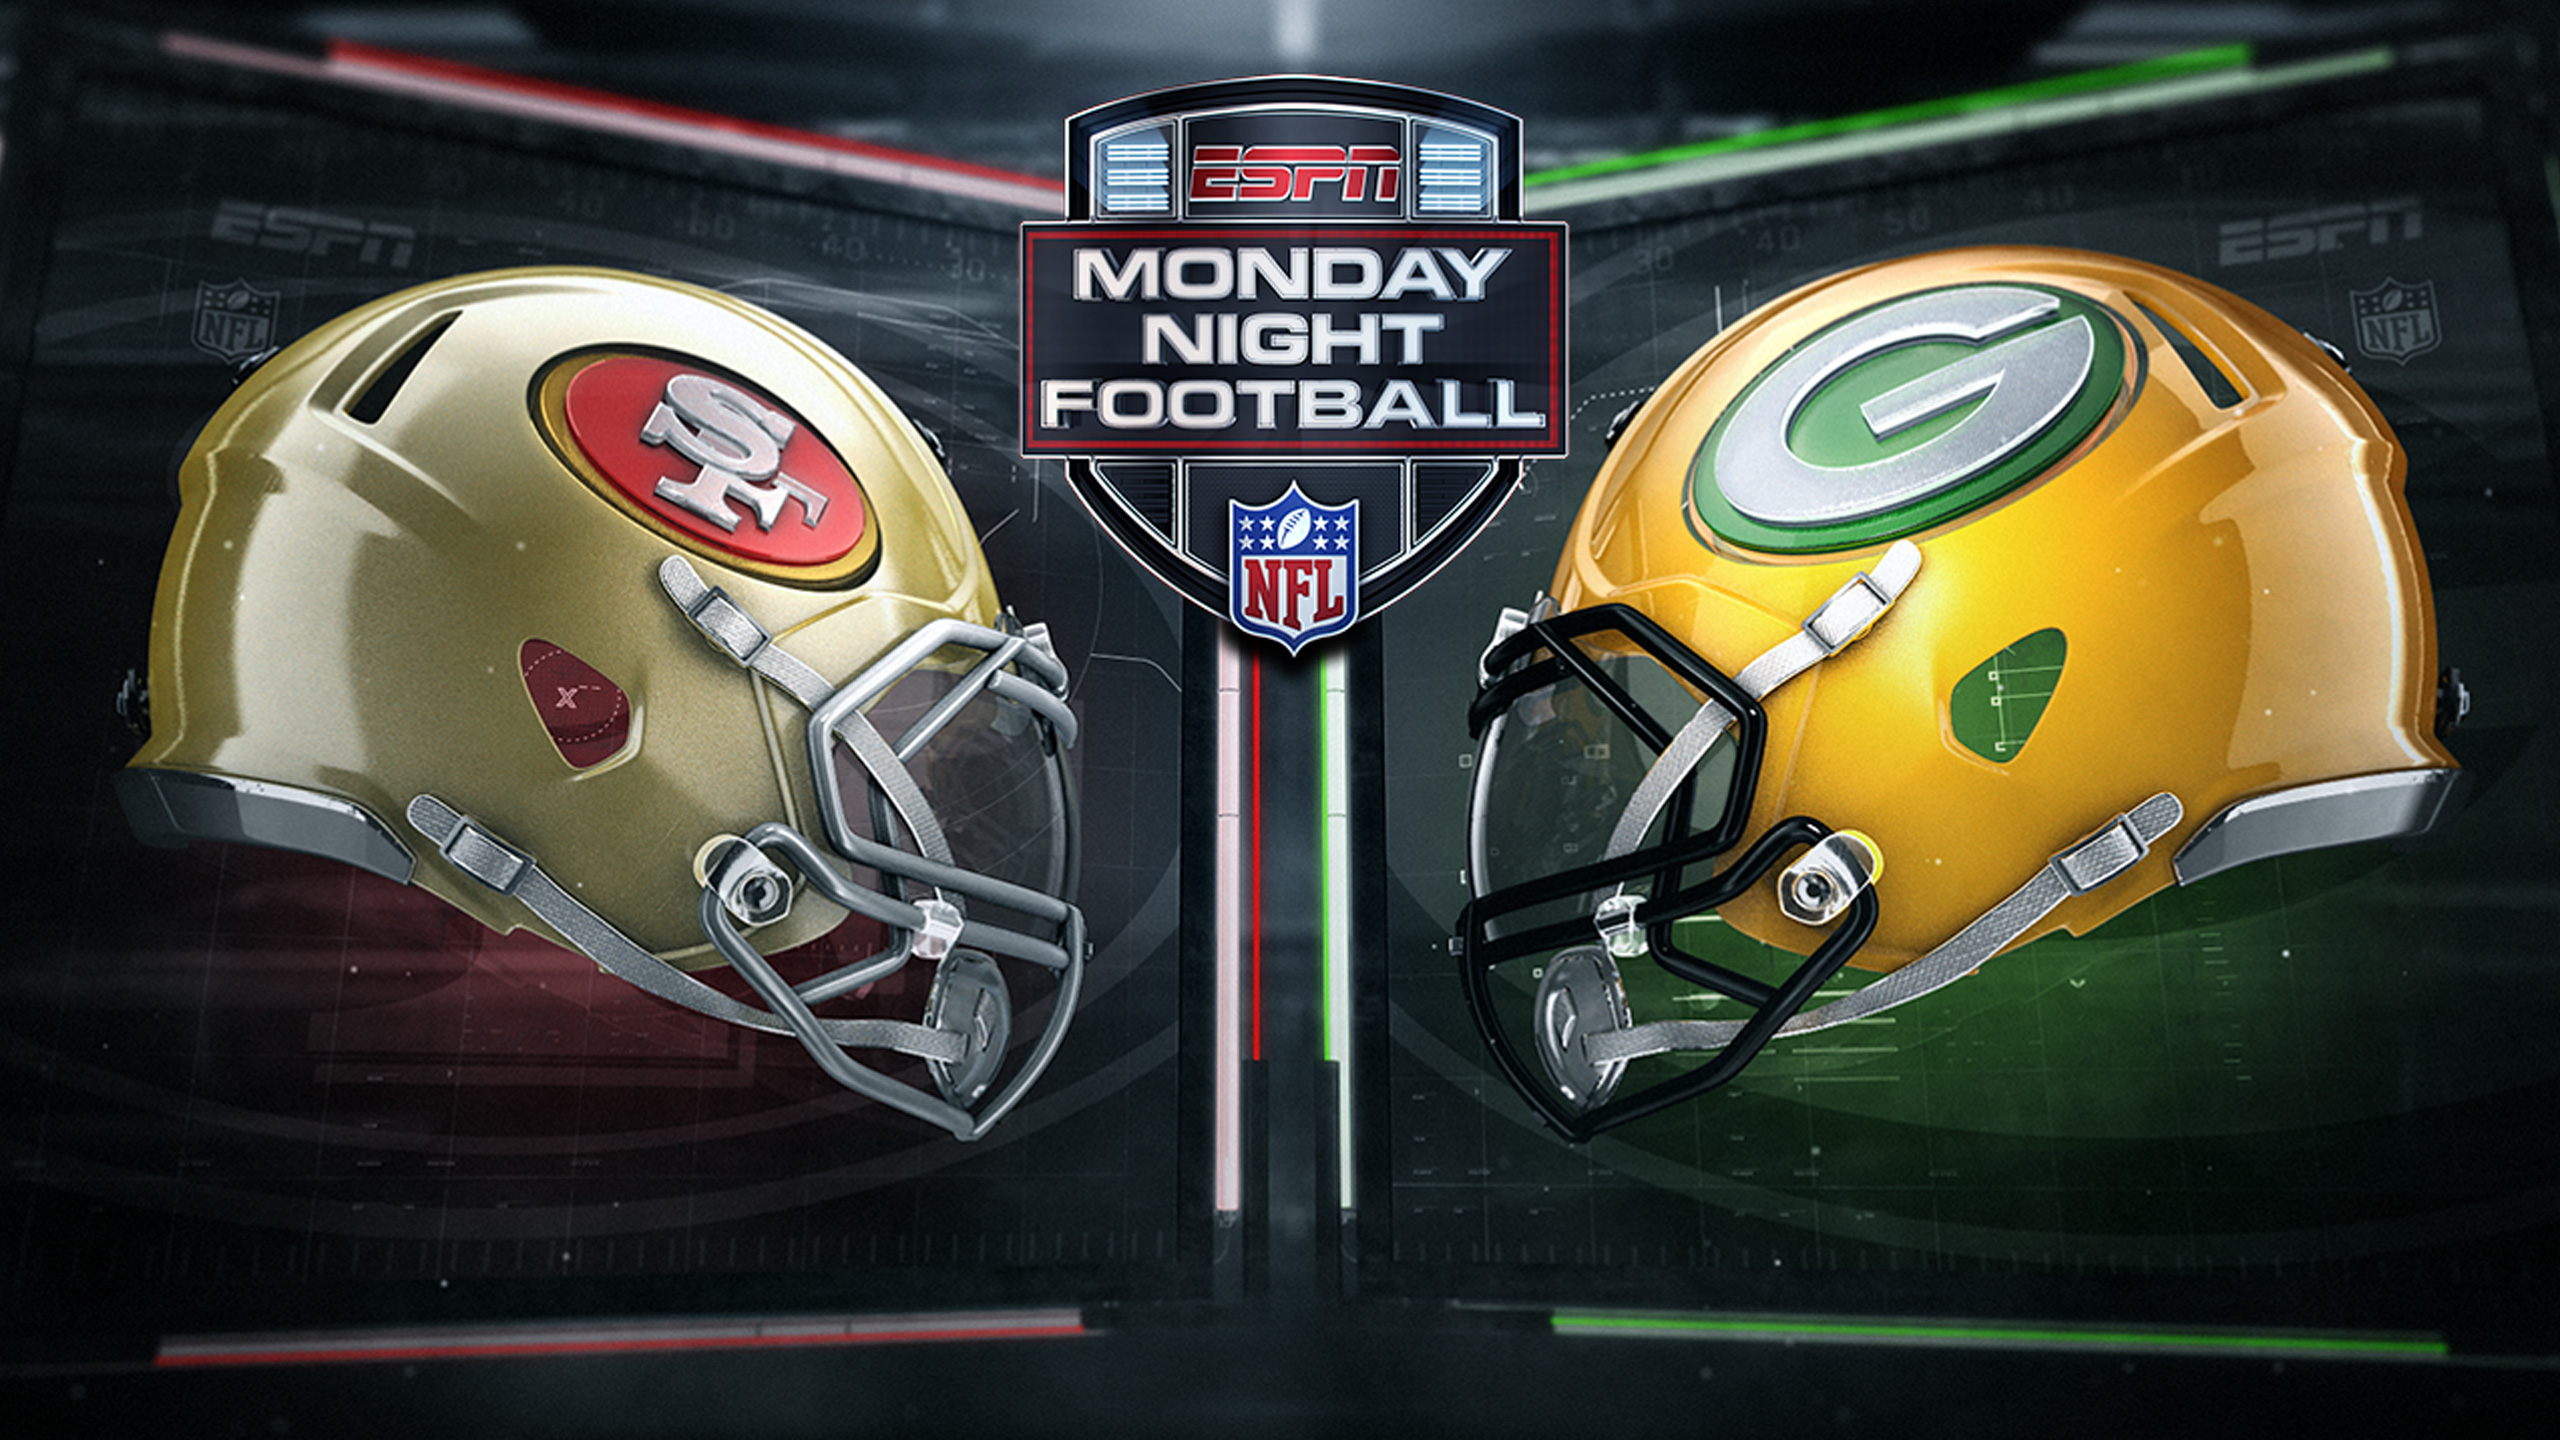 San Francisco 49ers vs. Green Bay Packers